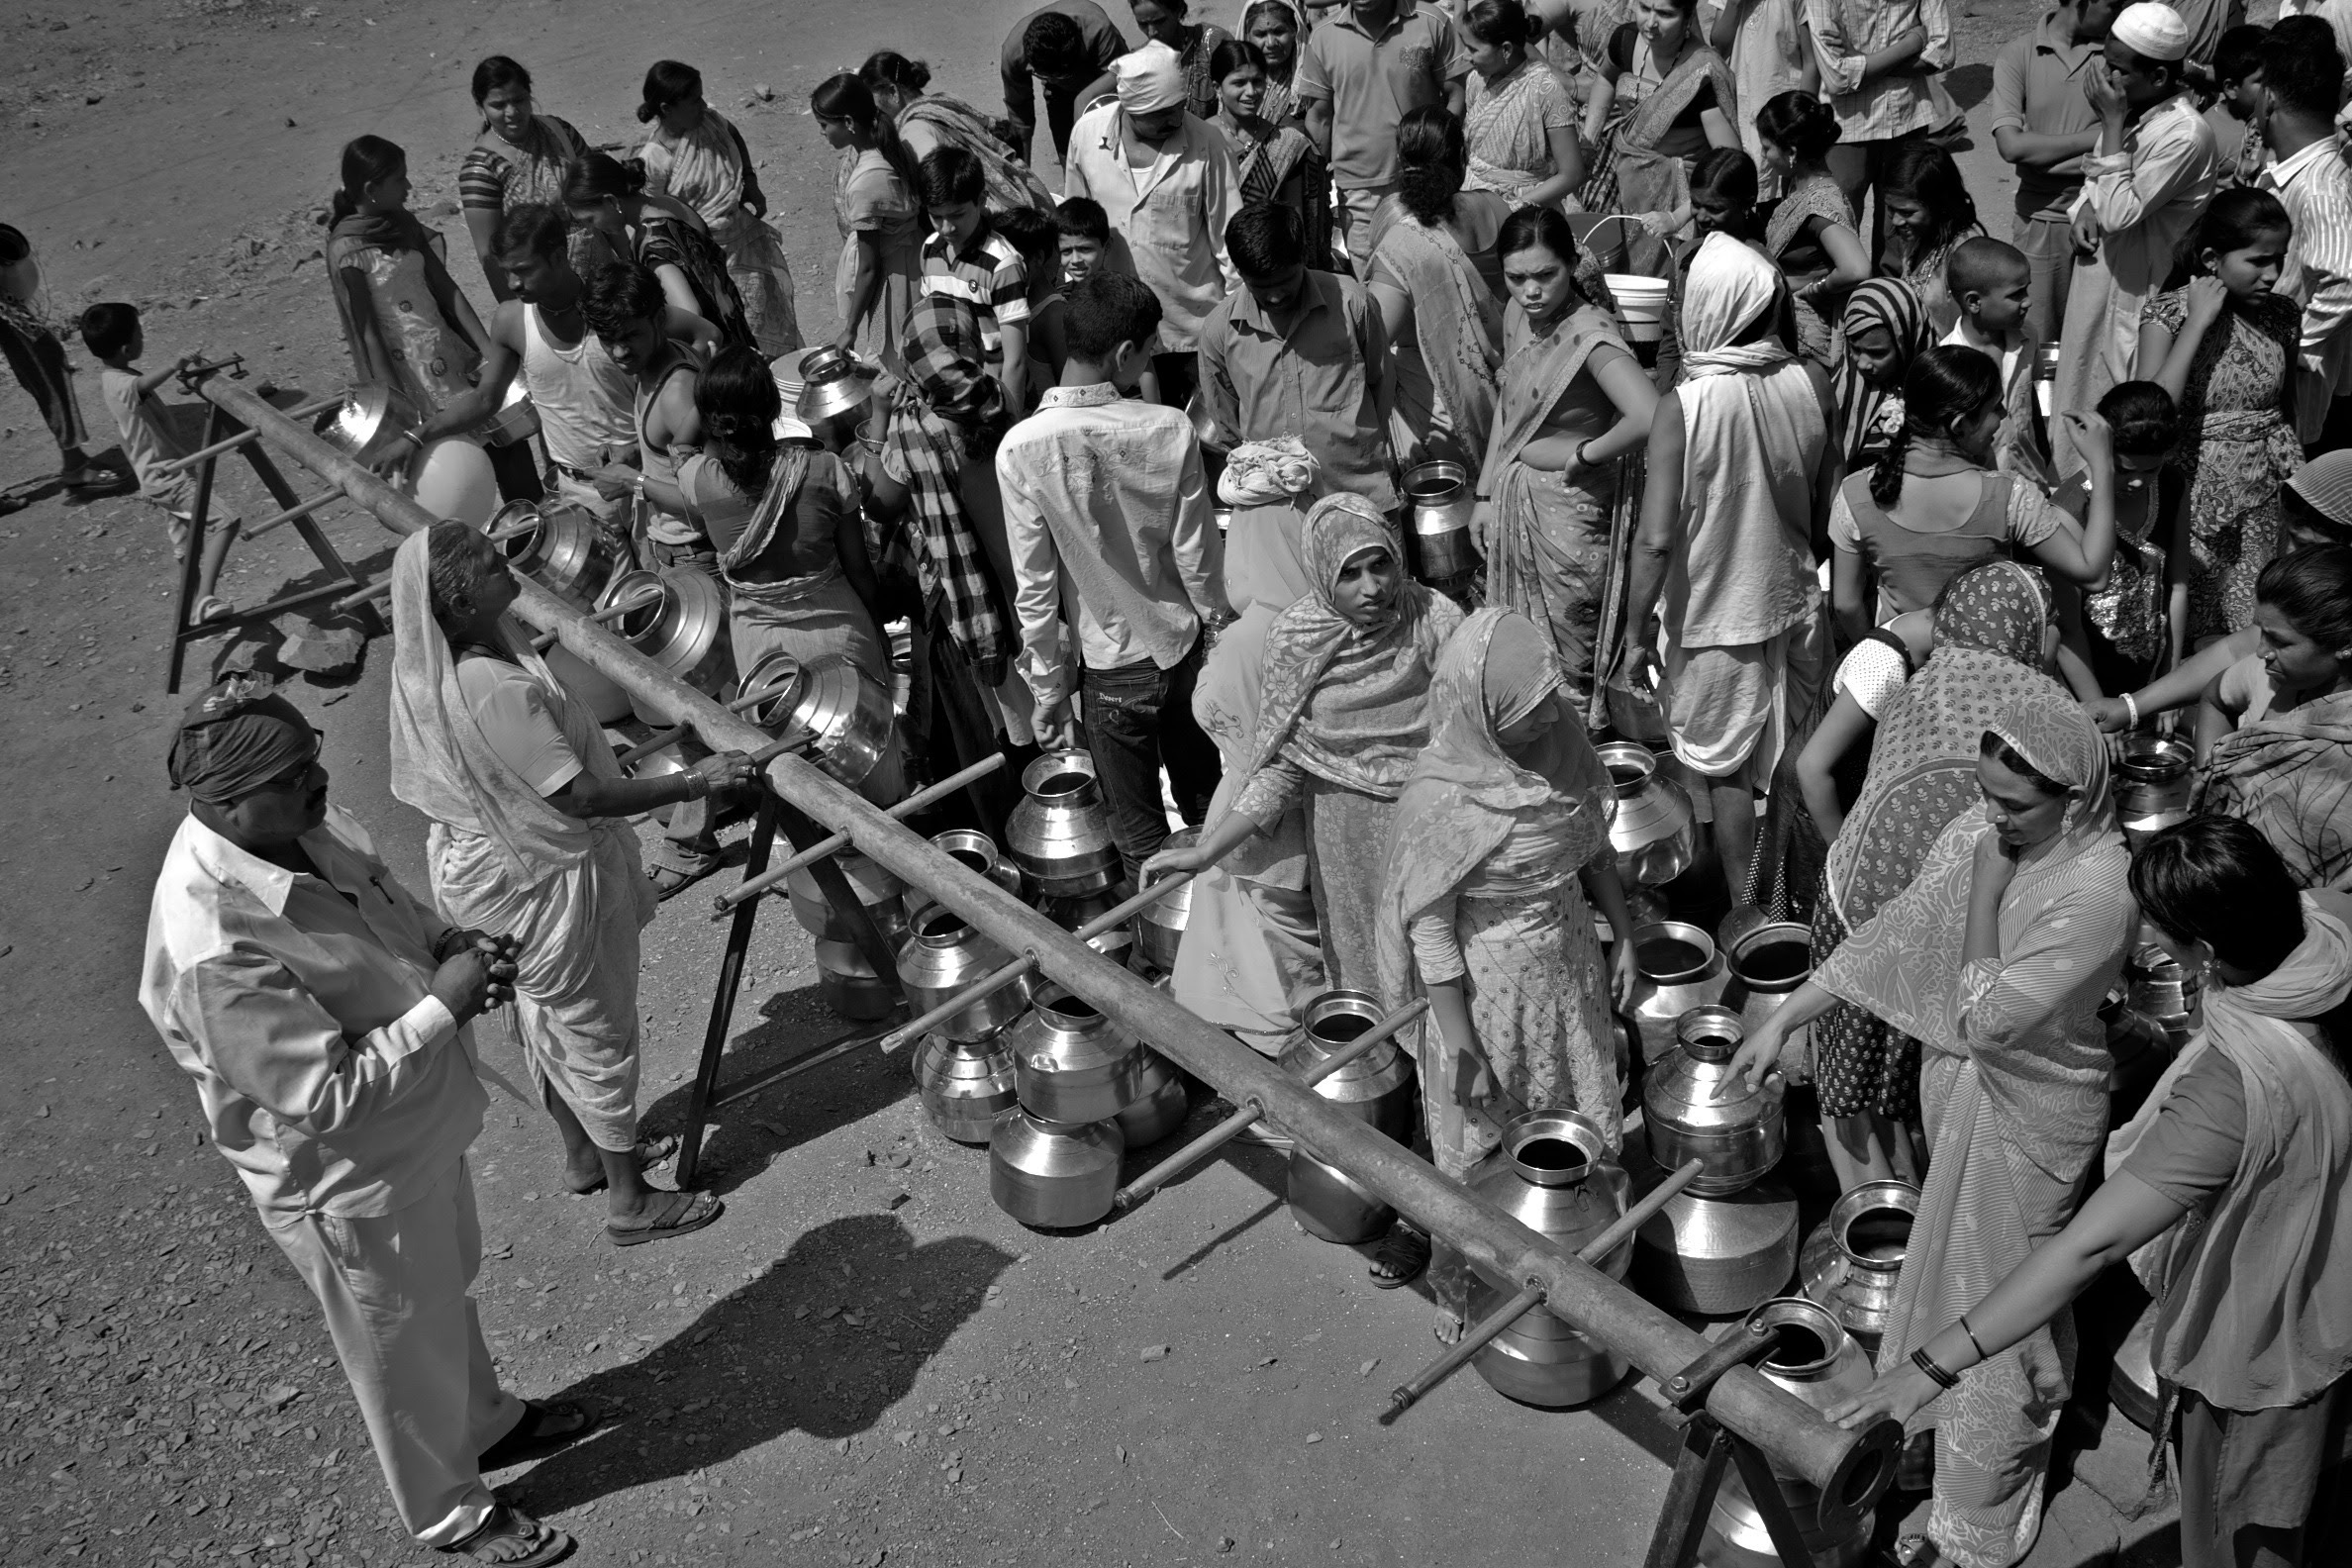 People waiting in line for water_ASwaminathan